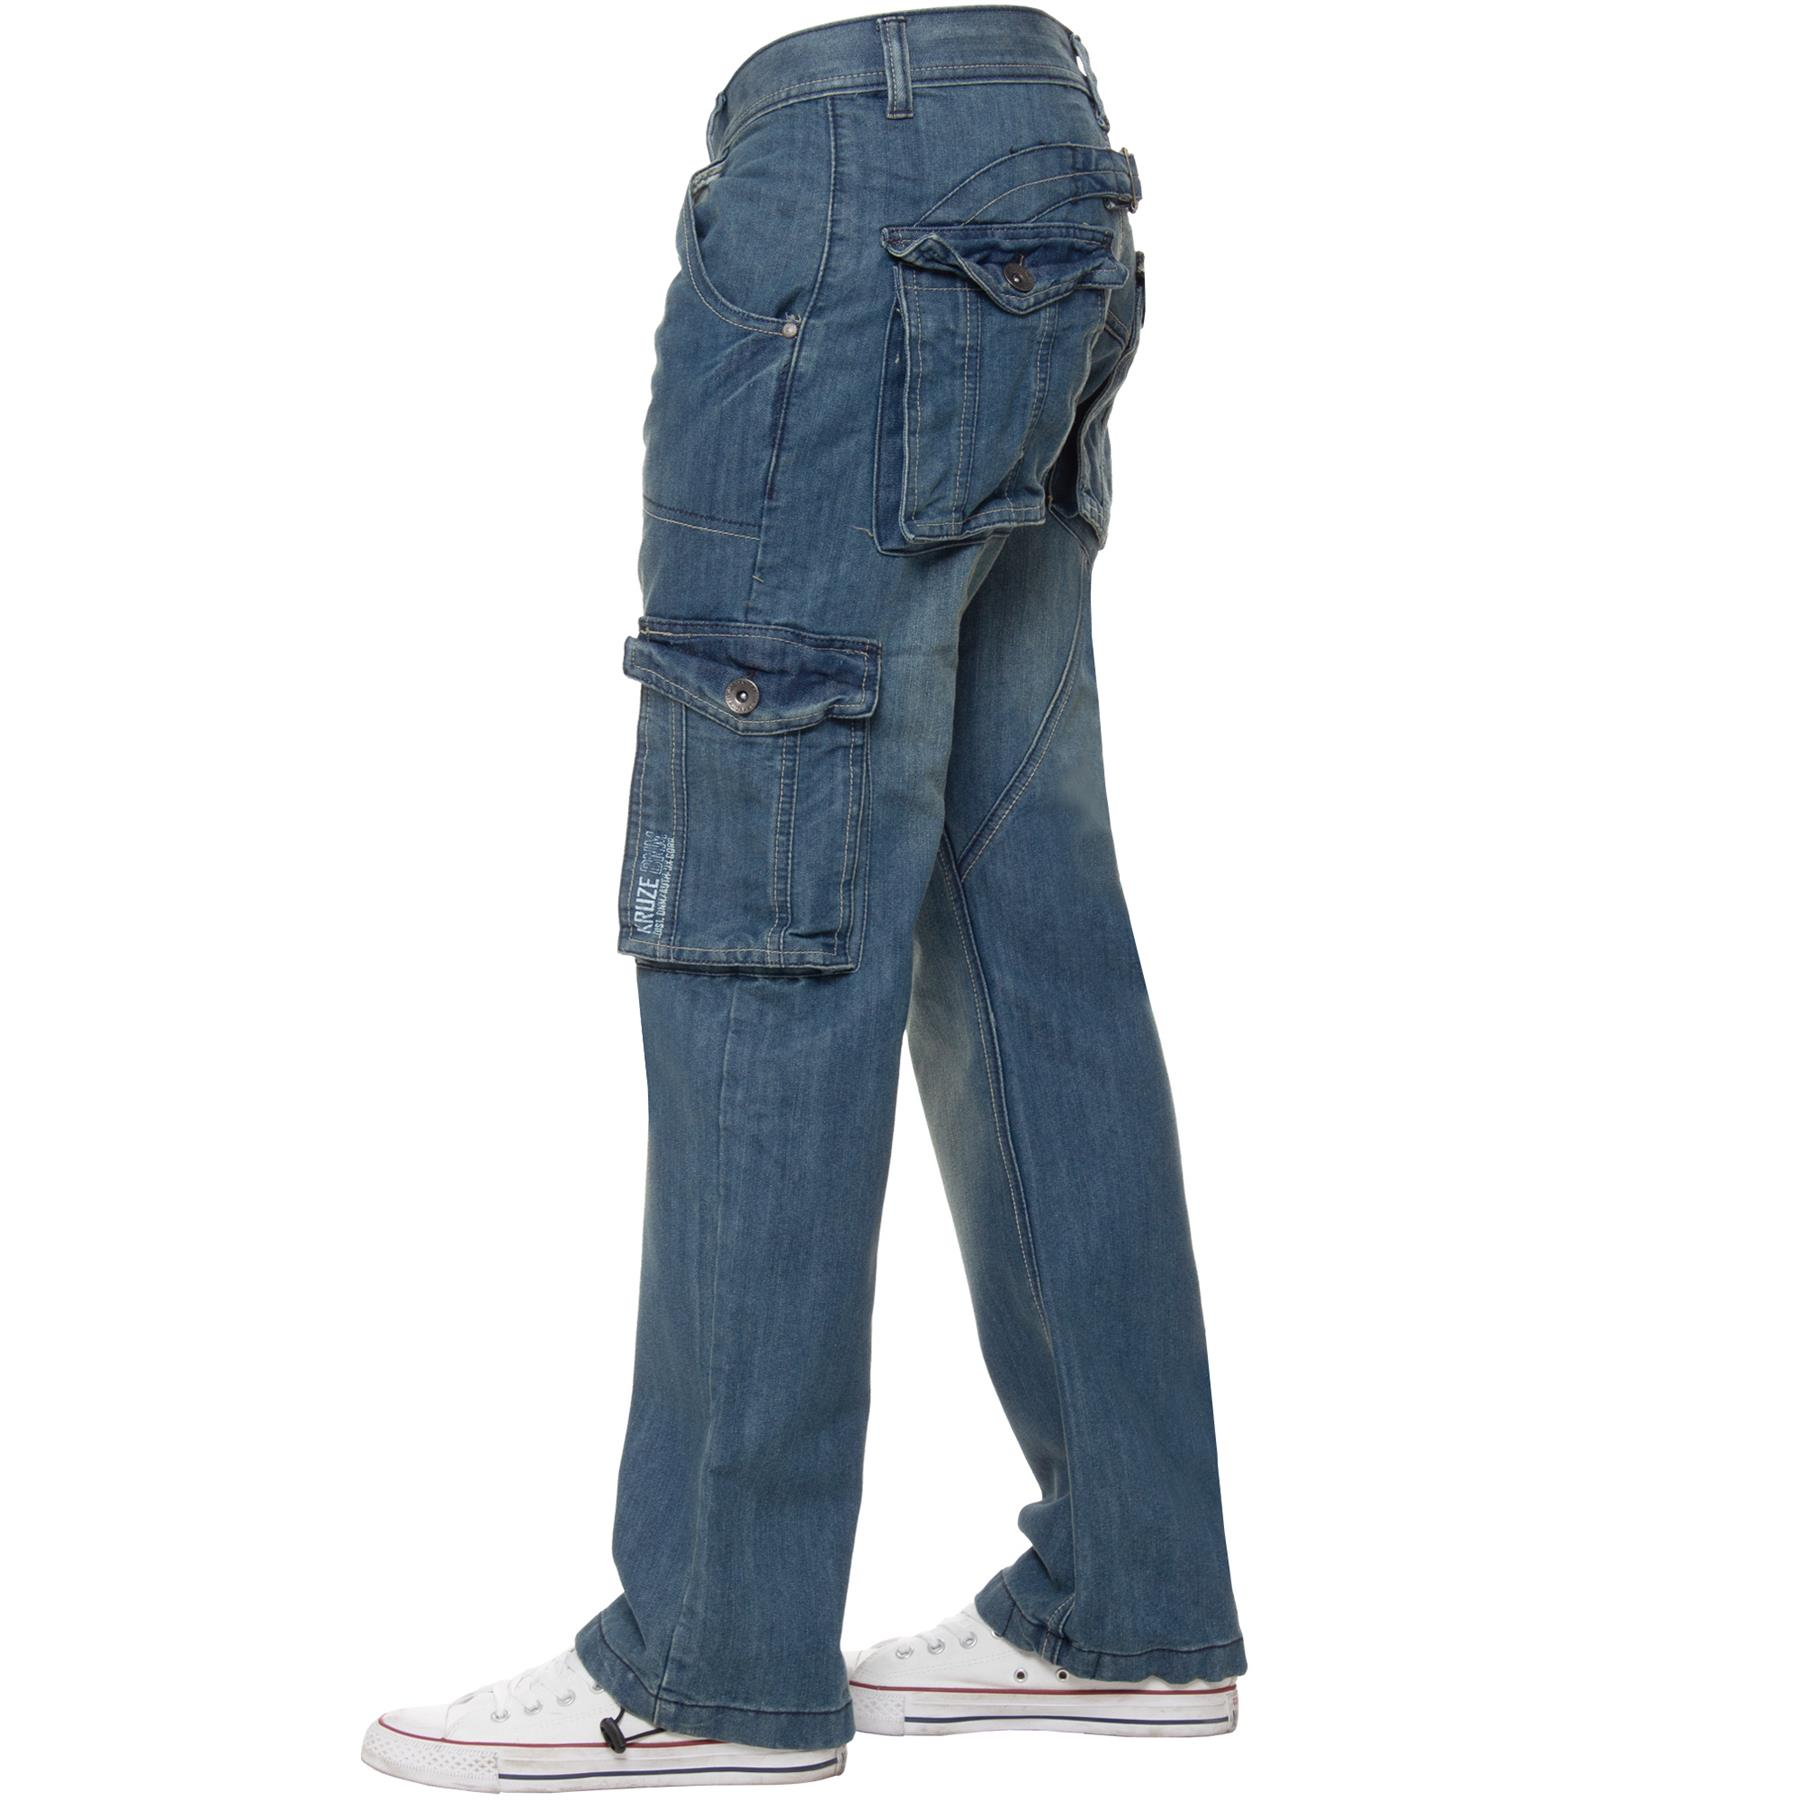 Kruze-Mens-Combat-Jeans-Casual-Cargo-Work-Denim-Trousers-Big-Tall-All-Waists thumbnail 4